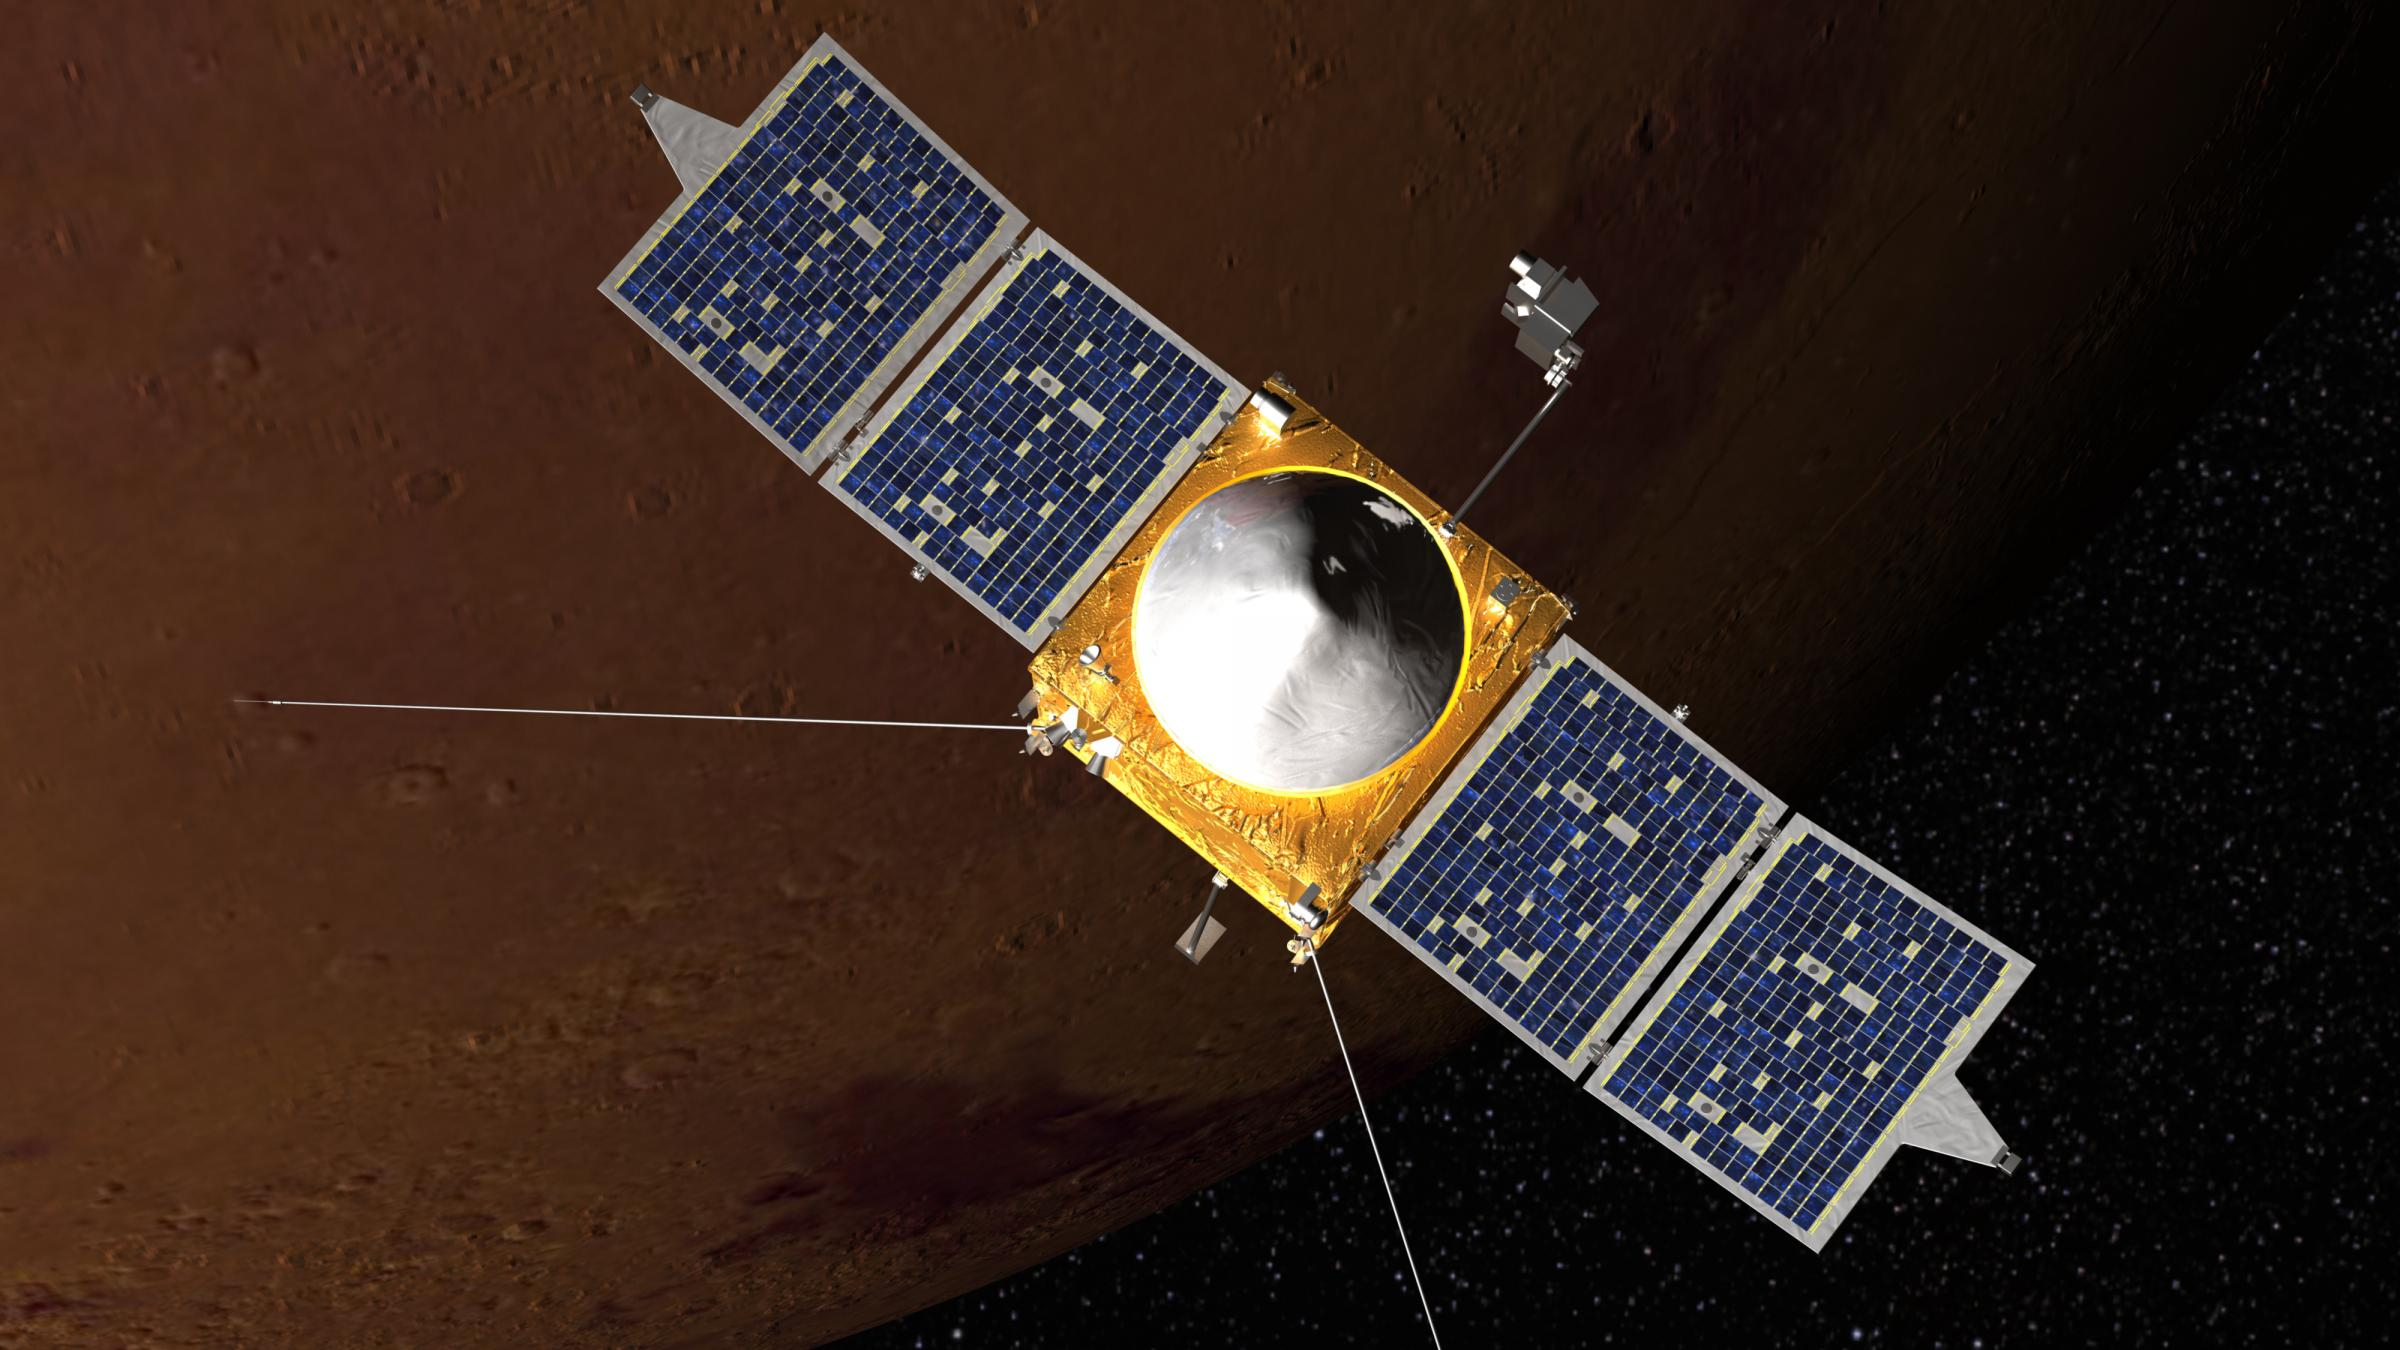 NASA: MAVEN Spacecraft Safely Circling Mars | West ...